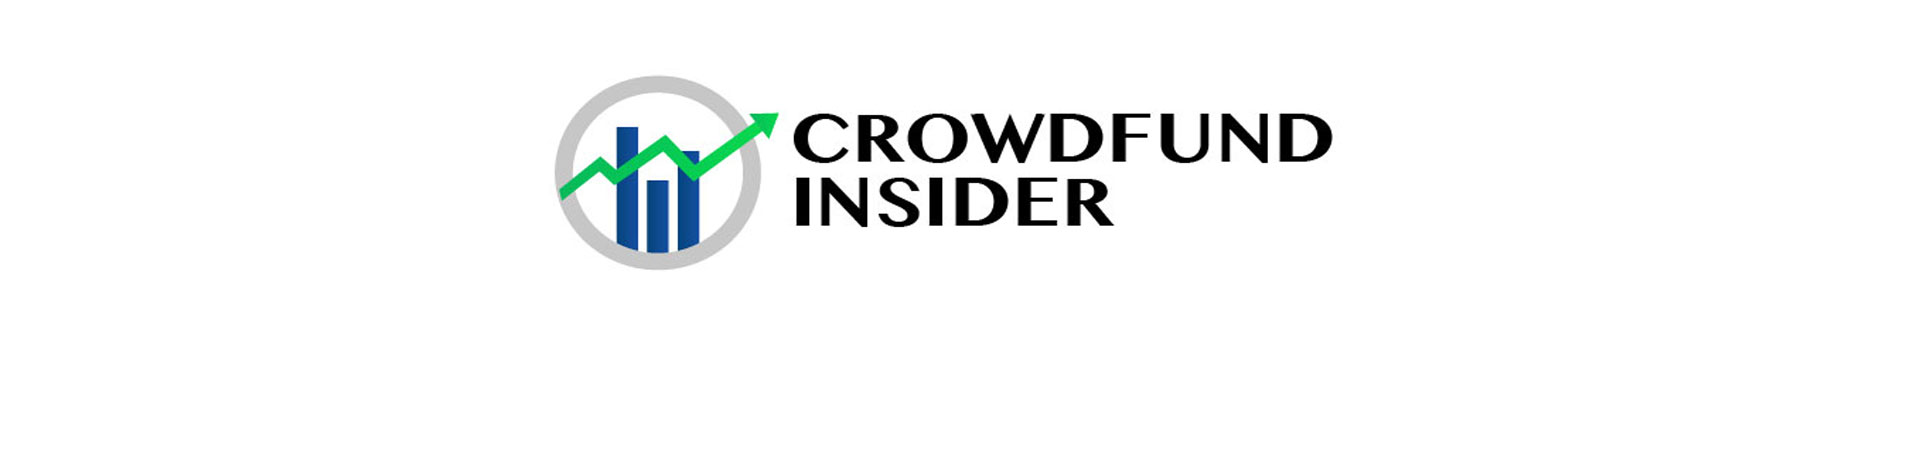 CROWDFUND INSIDER: Following Banner Year for Israeli Tech Exits, OurCrowd Highlights Investment Success with 36 Exits to Date